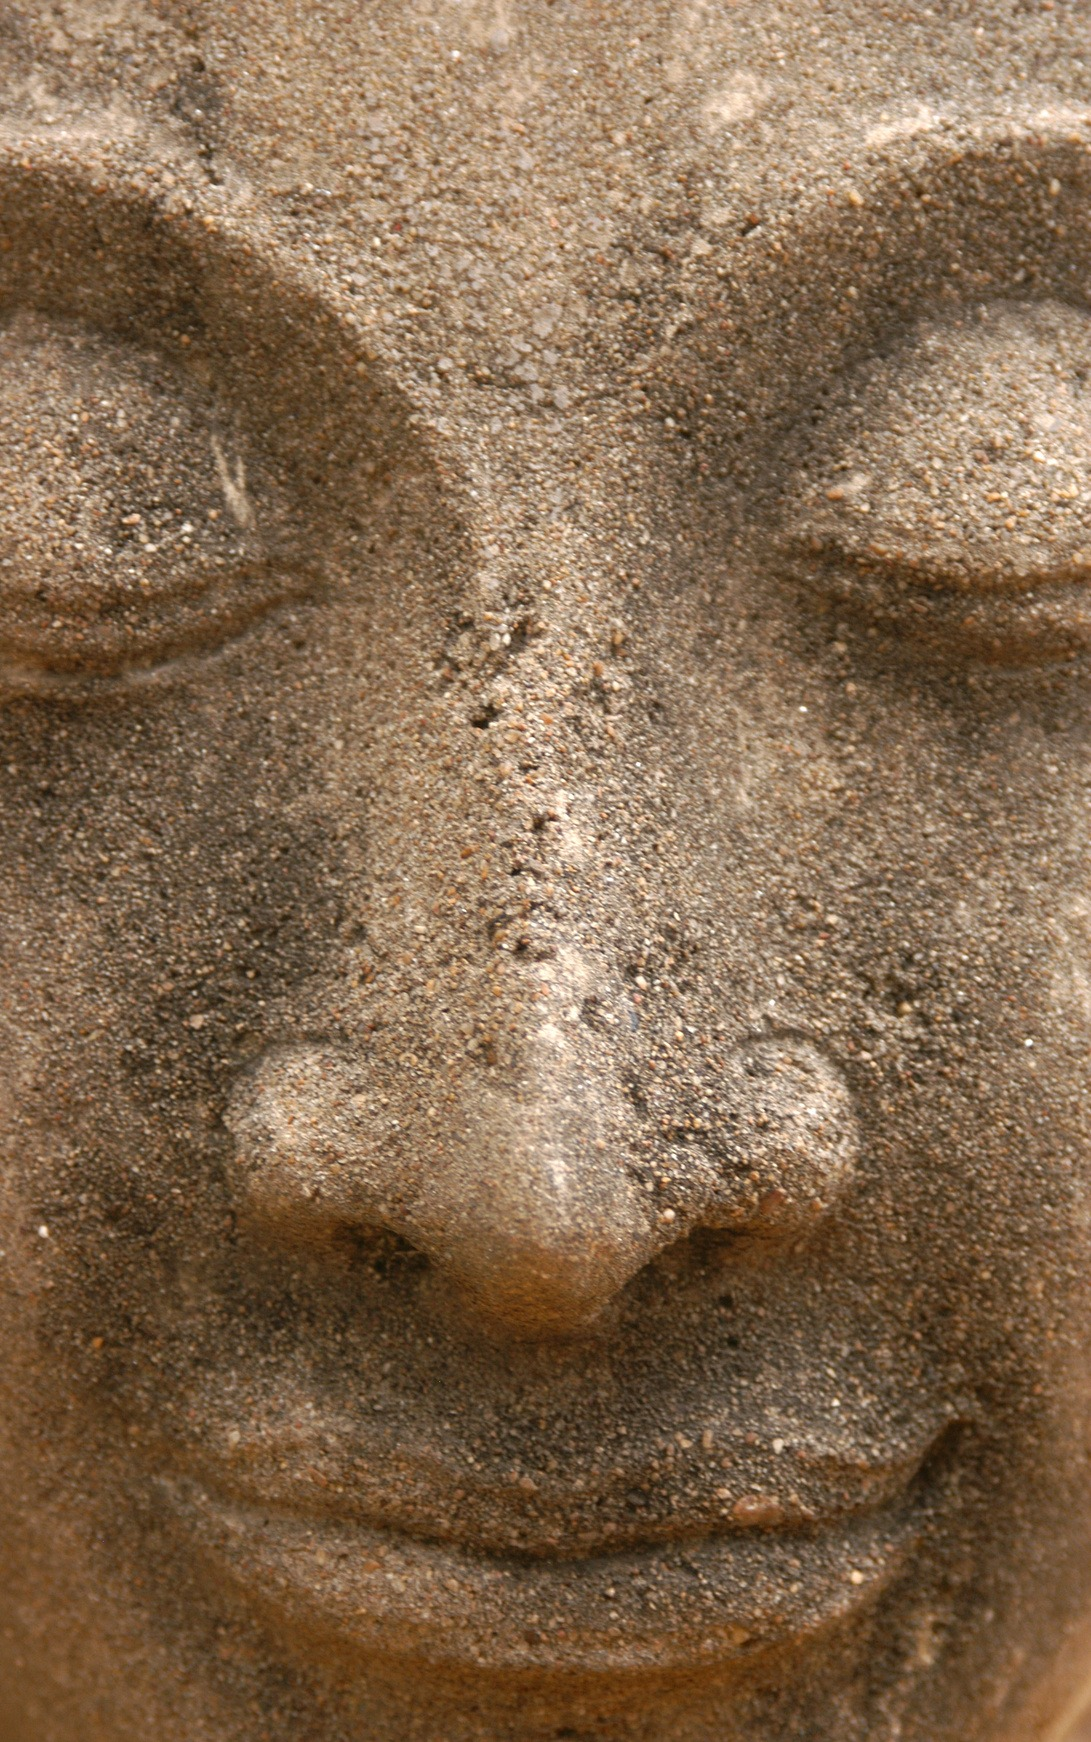 Stone face of Buddha from the temple of Wat Yai Chai Mongkol in Ayutthaya, Thailand